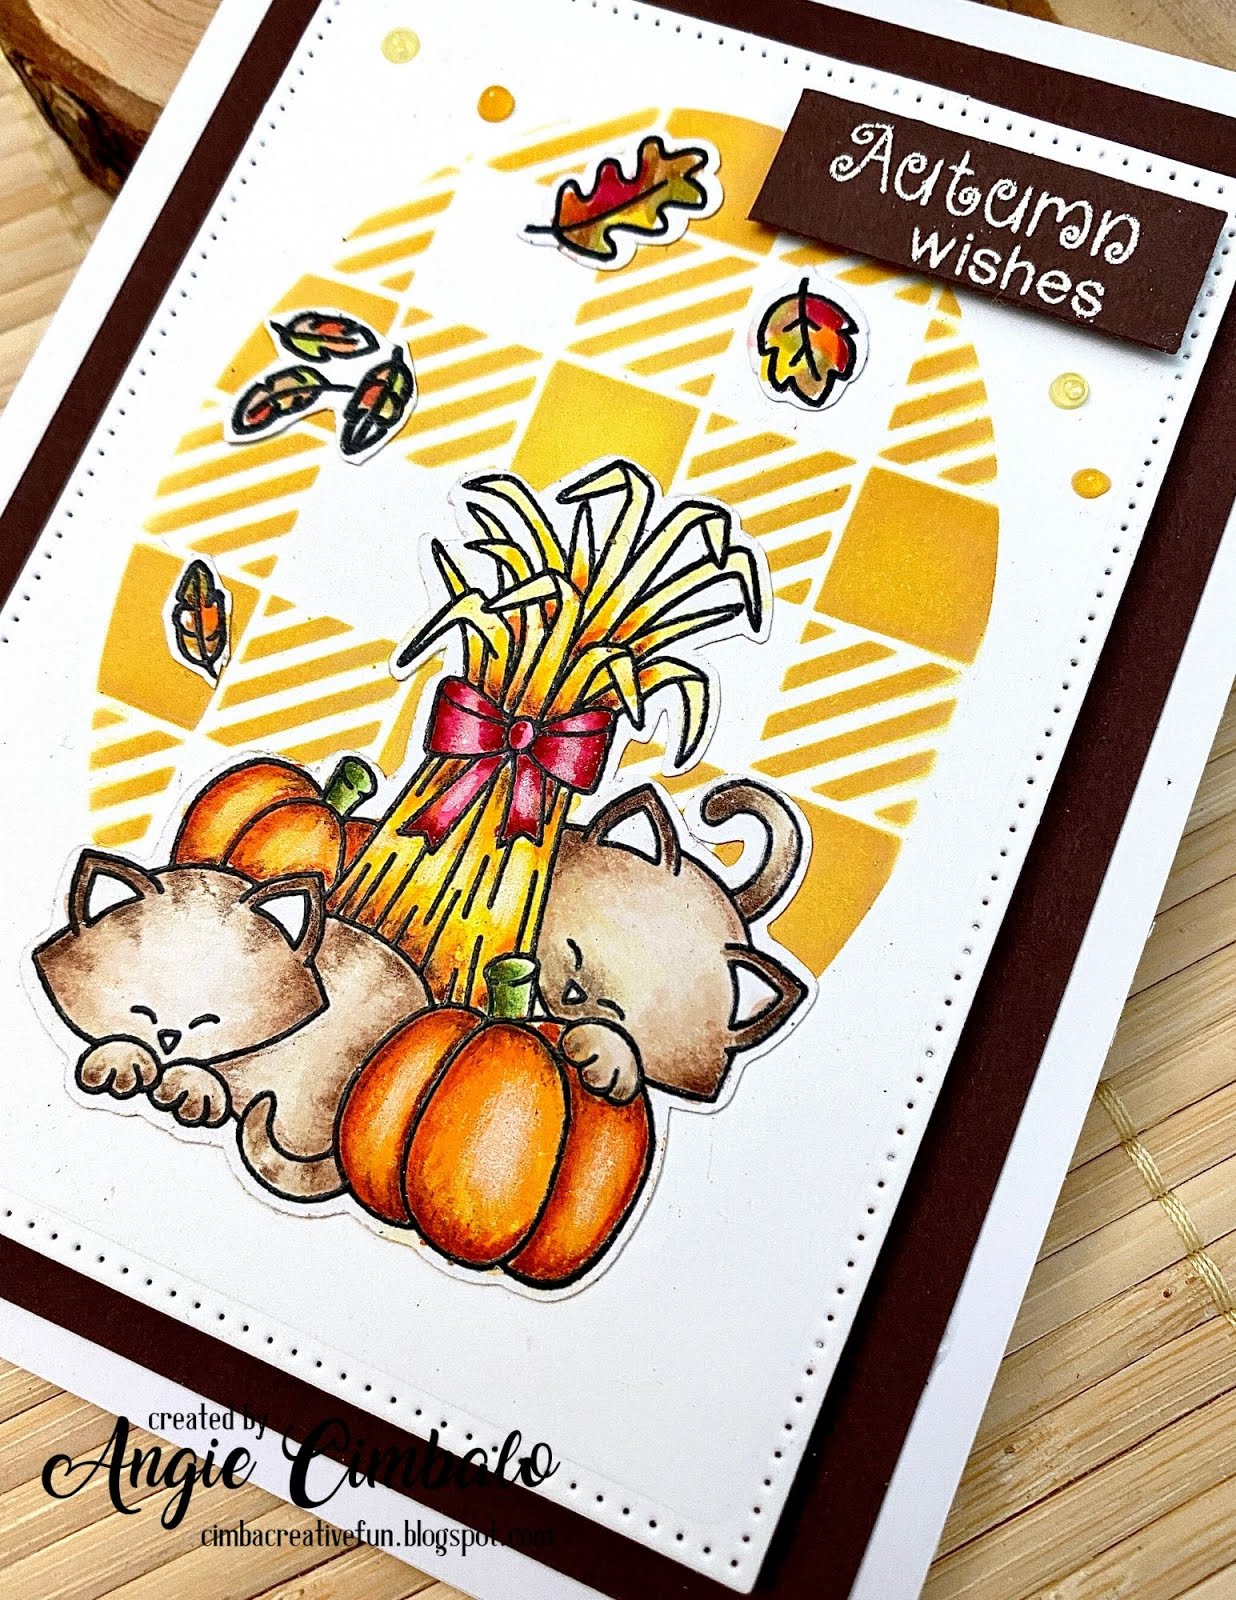 Fall Themed Cat Card by August Guest Designer Angie Cimbalo | Autumn Newton Stamp Set, Beautiful Leaves Stamp Set, Newton's Birthday Flutter Stamp Set and Gingham Stencil by Newton's Nook Designs  #newtonsnook #handmade